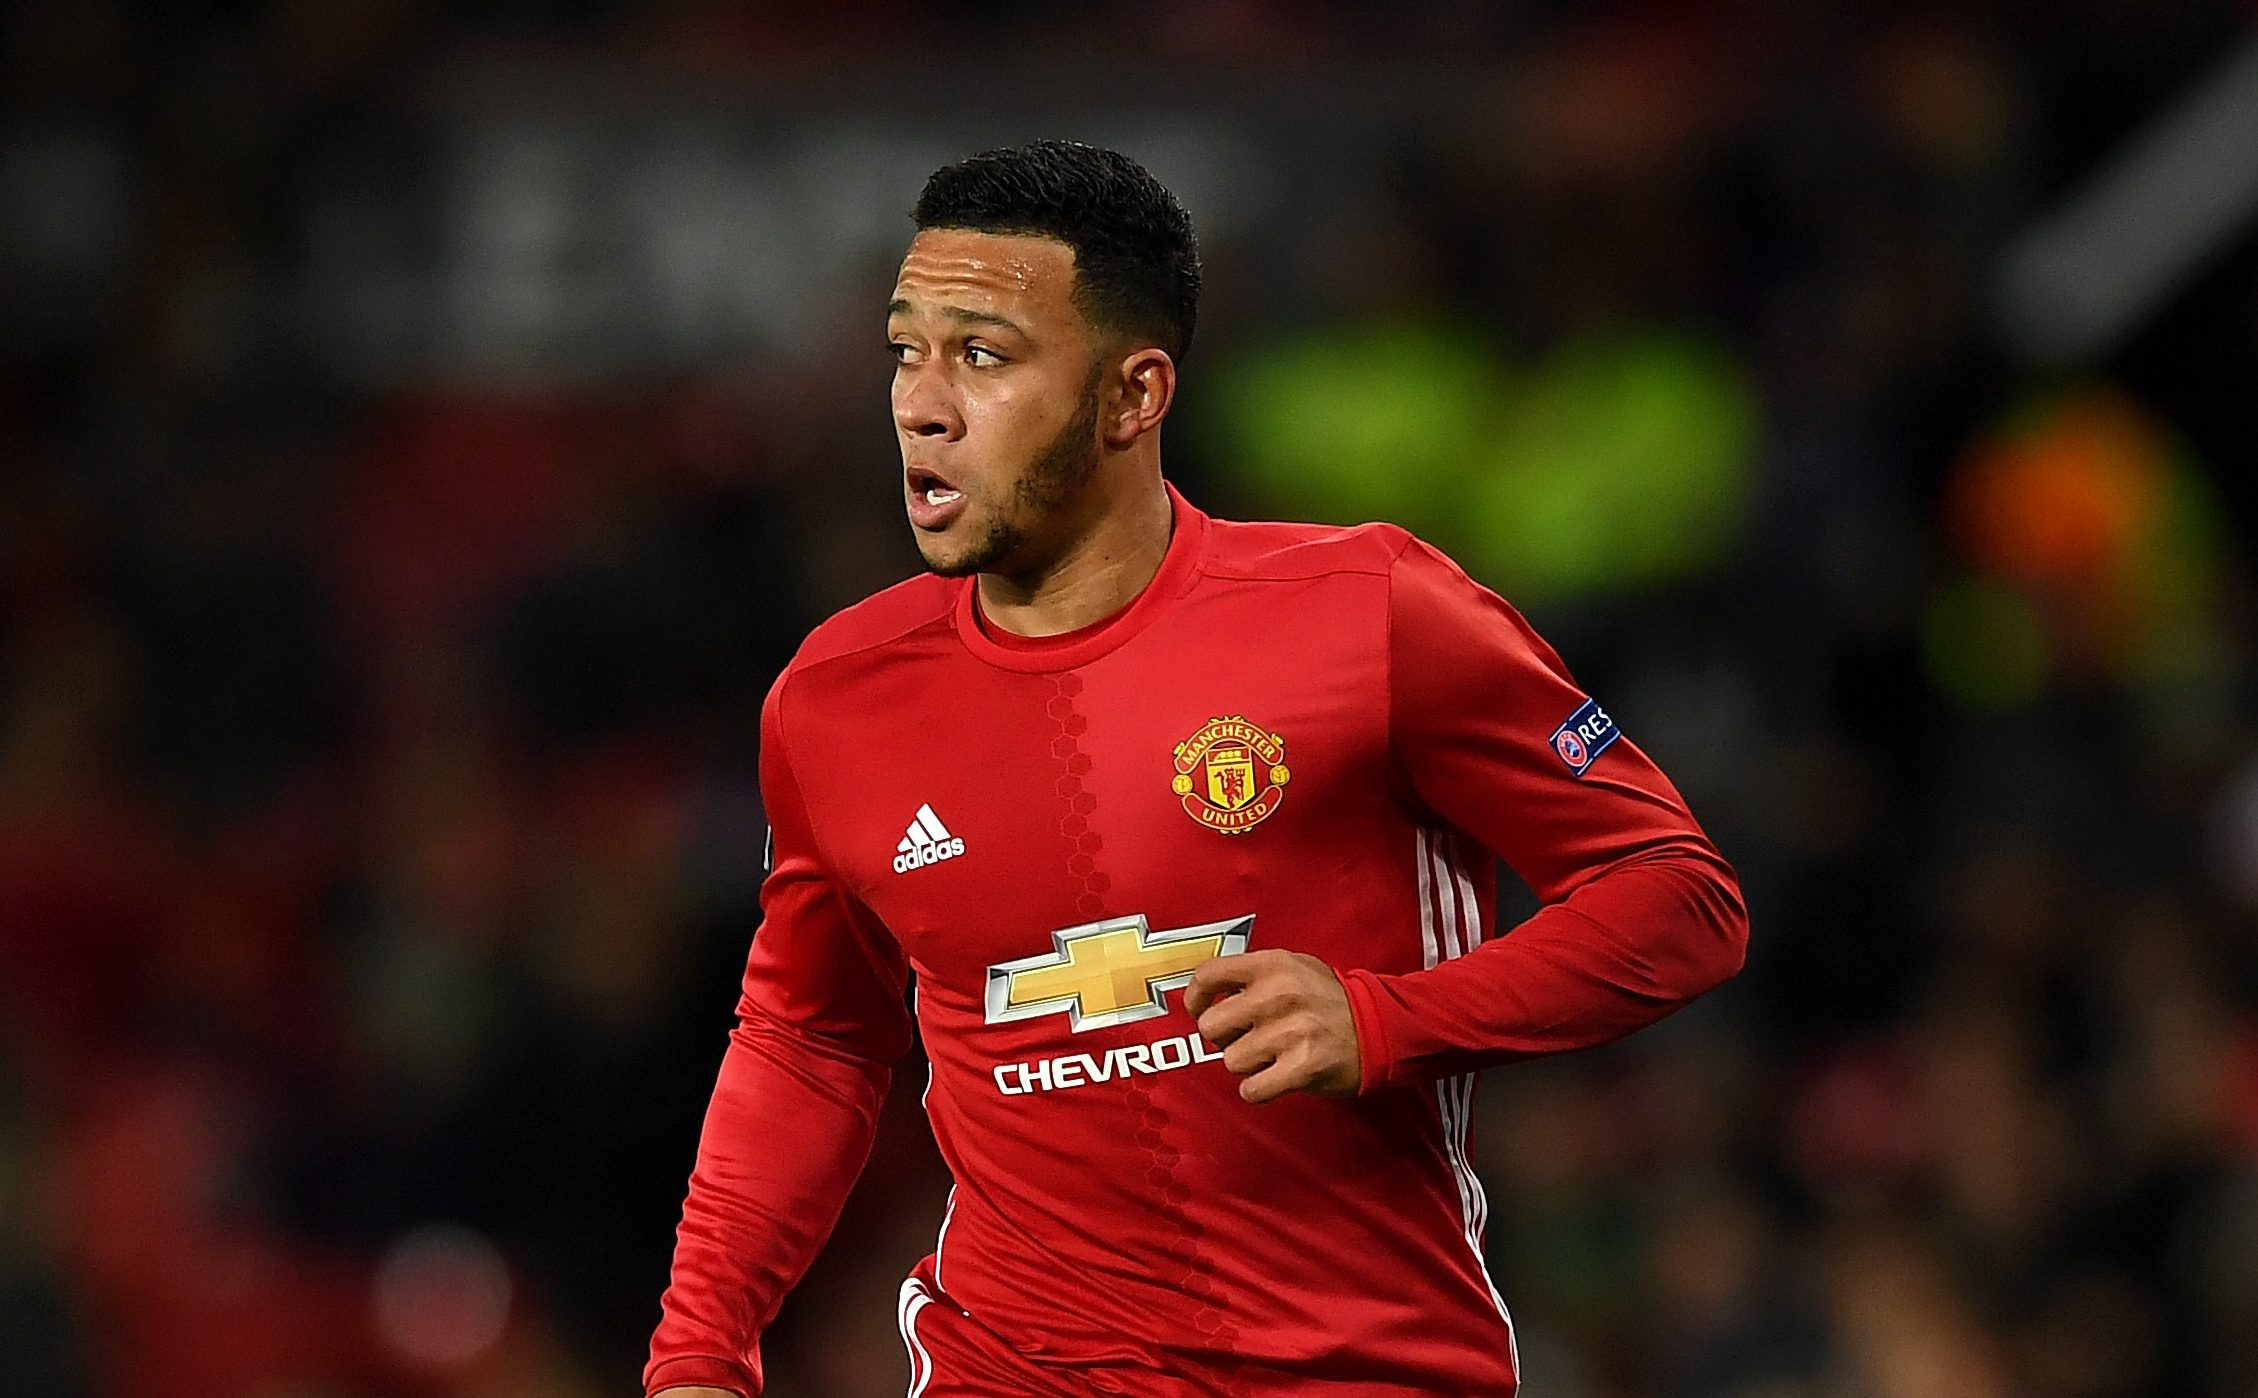 MANCHESTER, ENGLAND - NOVEMBER 24:  Memphis Depay of Manchester United during the UEFA Europa League match between Manchester United FC and Feyenoord at Old Trafford on November 24, 2016 in Manchester, England.  (Photo by Gareth Copley/Getty Images)